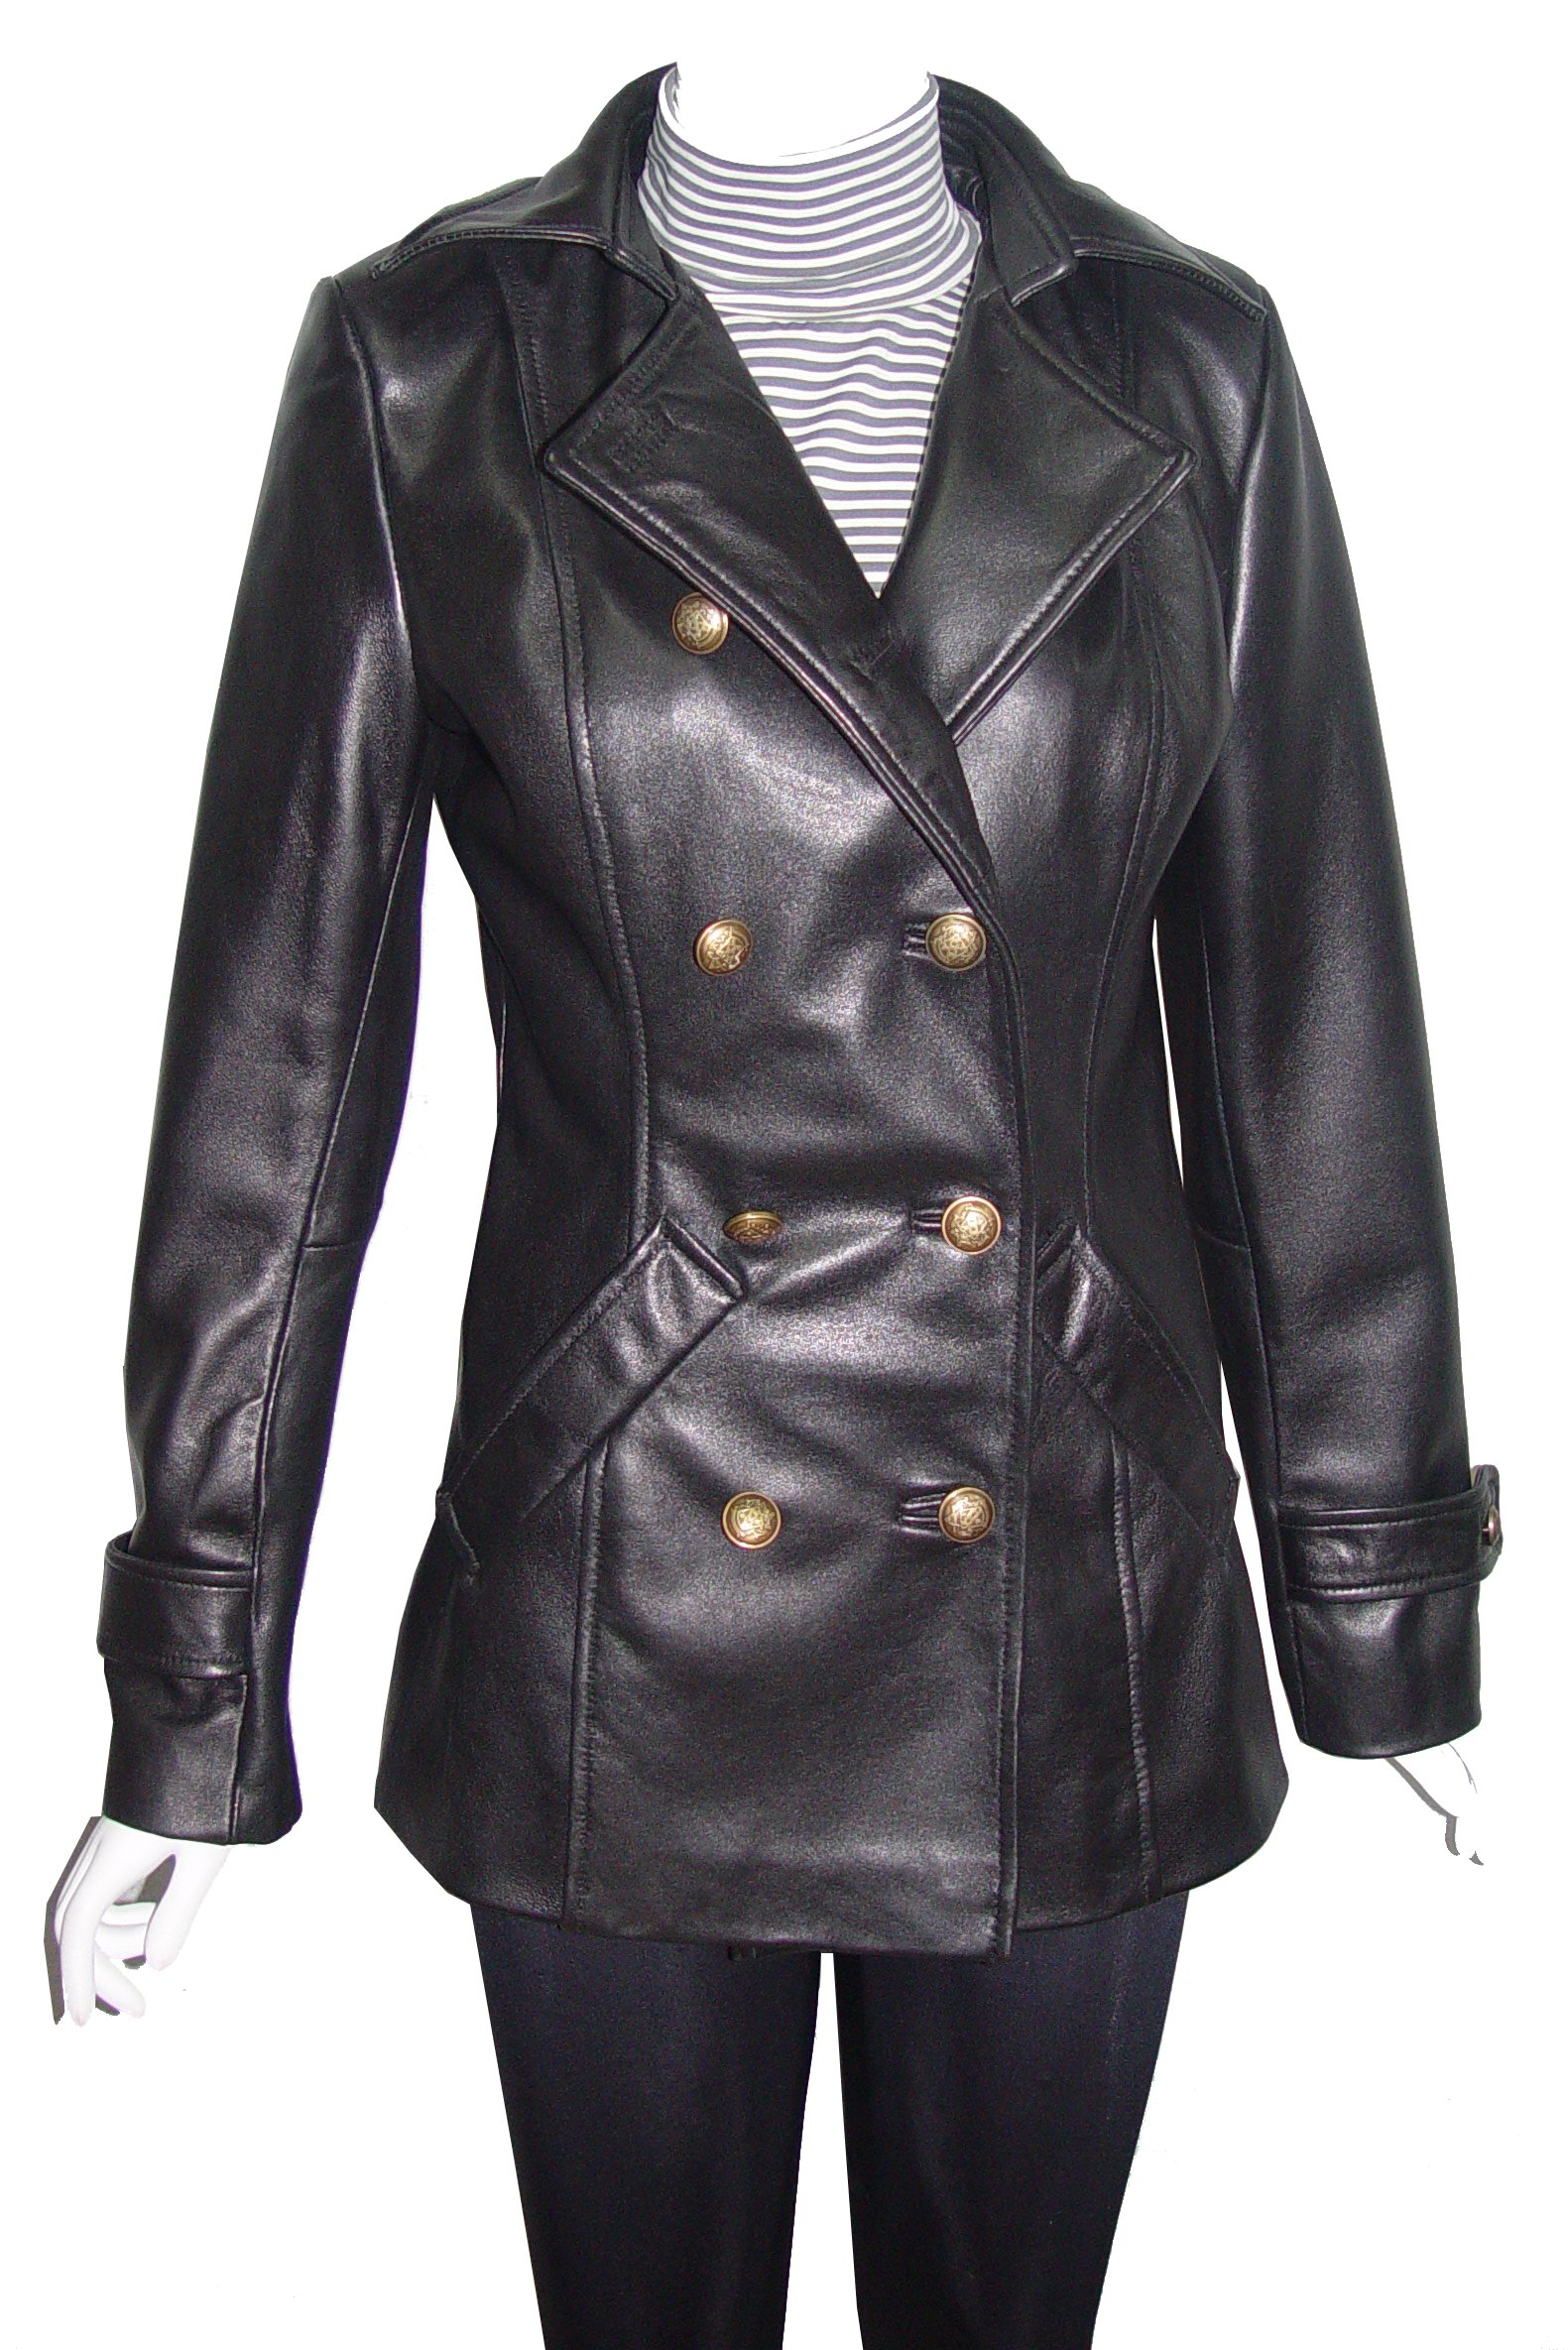 Nettailor 4100 Best Leather Pea Coats Ladies Business Clothing Real Lamb